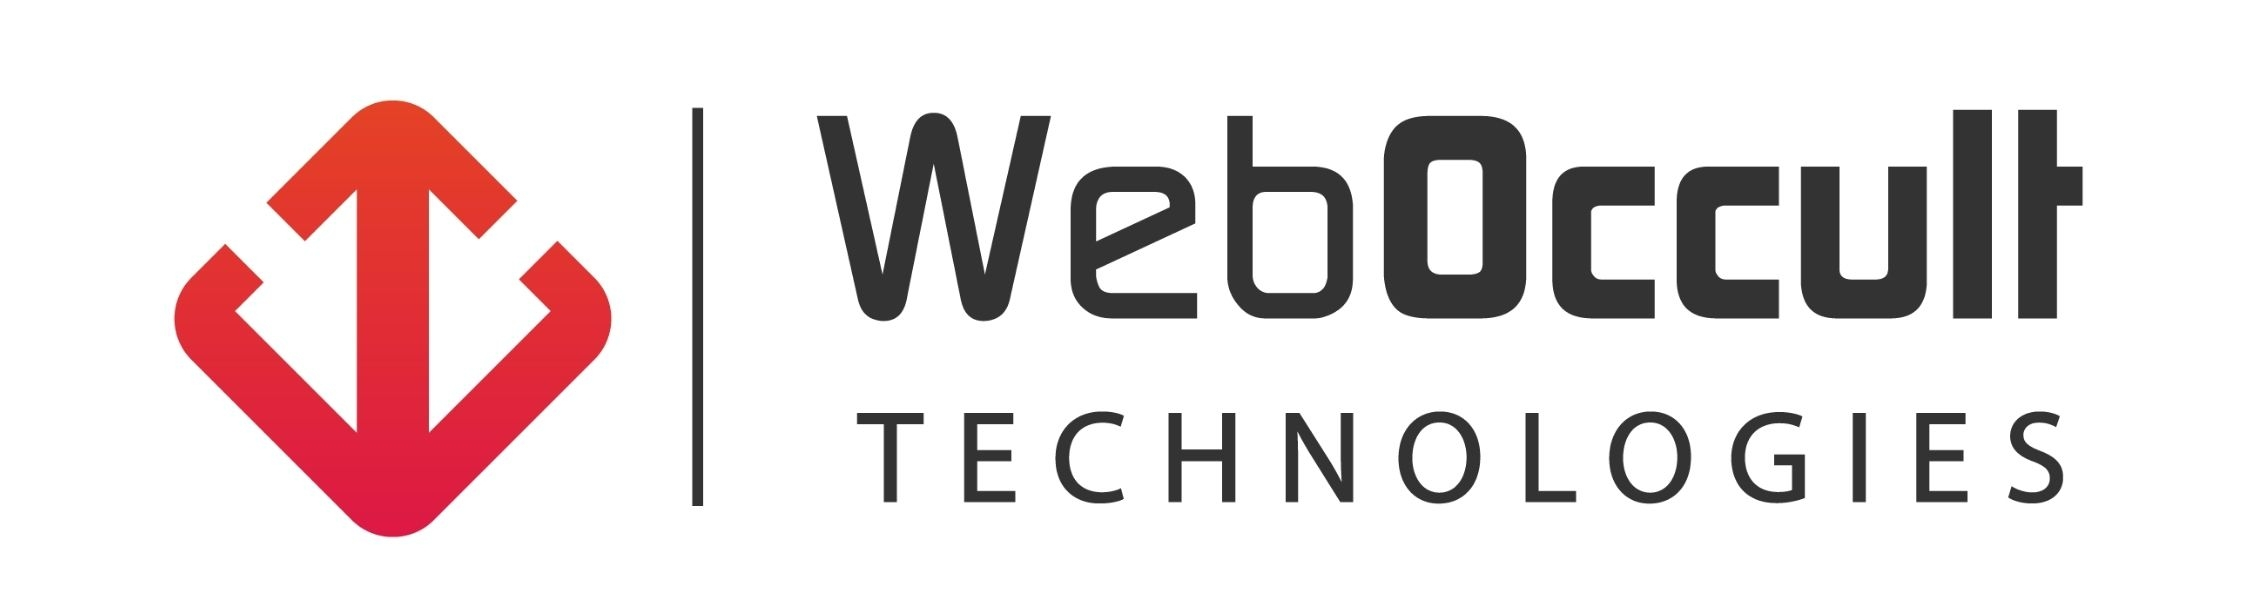 Weboccult Technolo (@webocculttechnologies) Cover Image